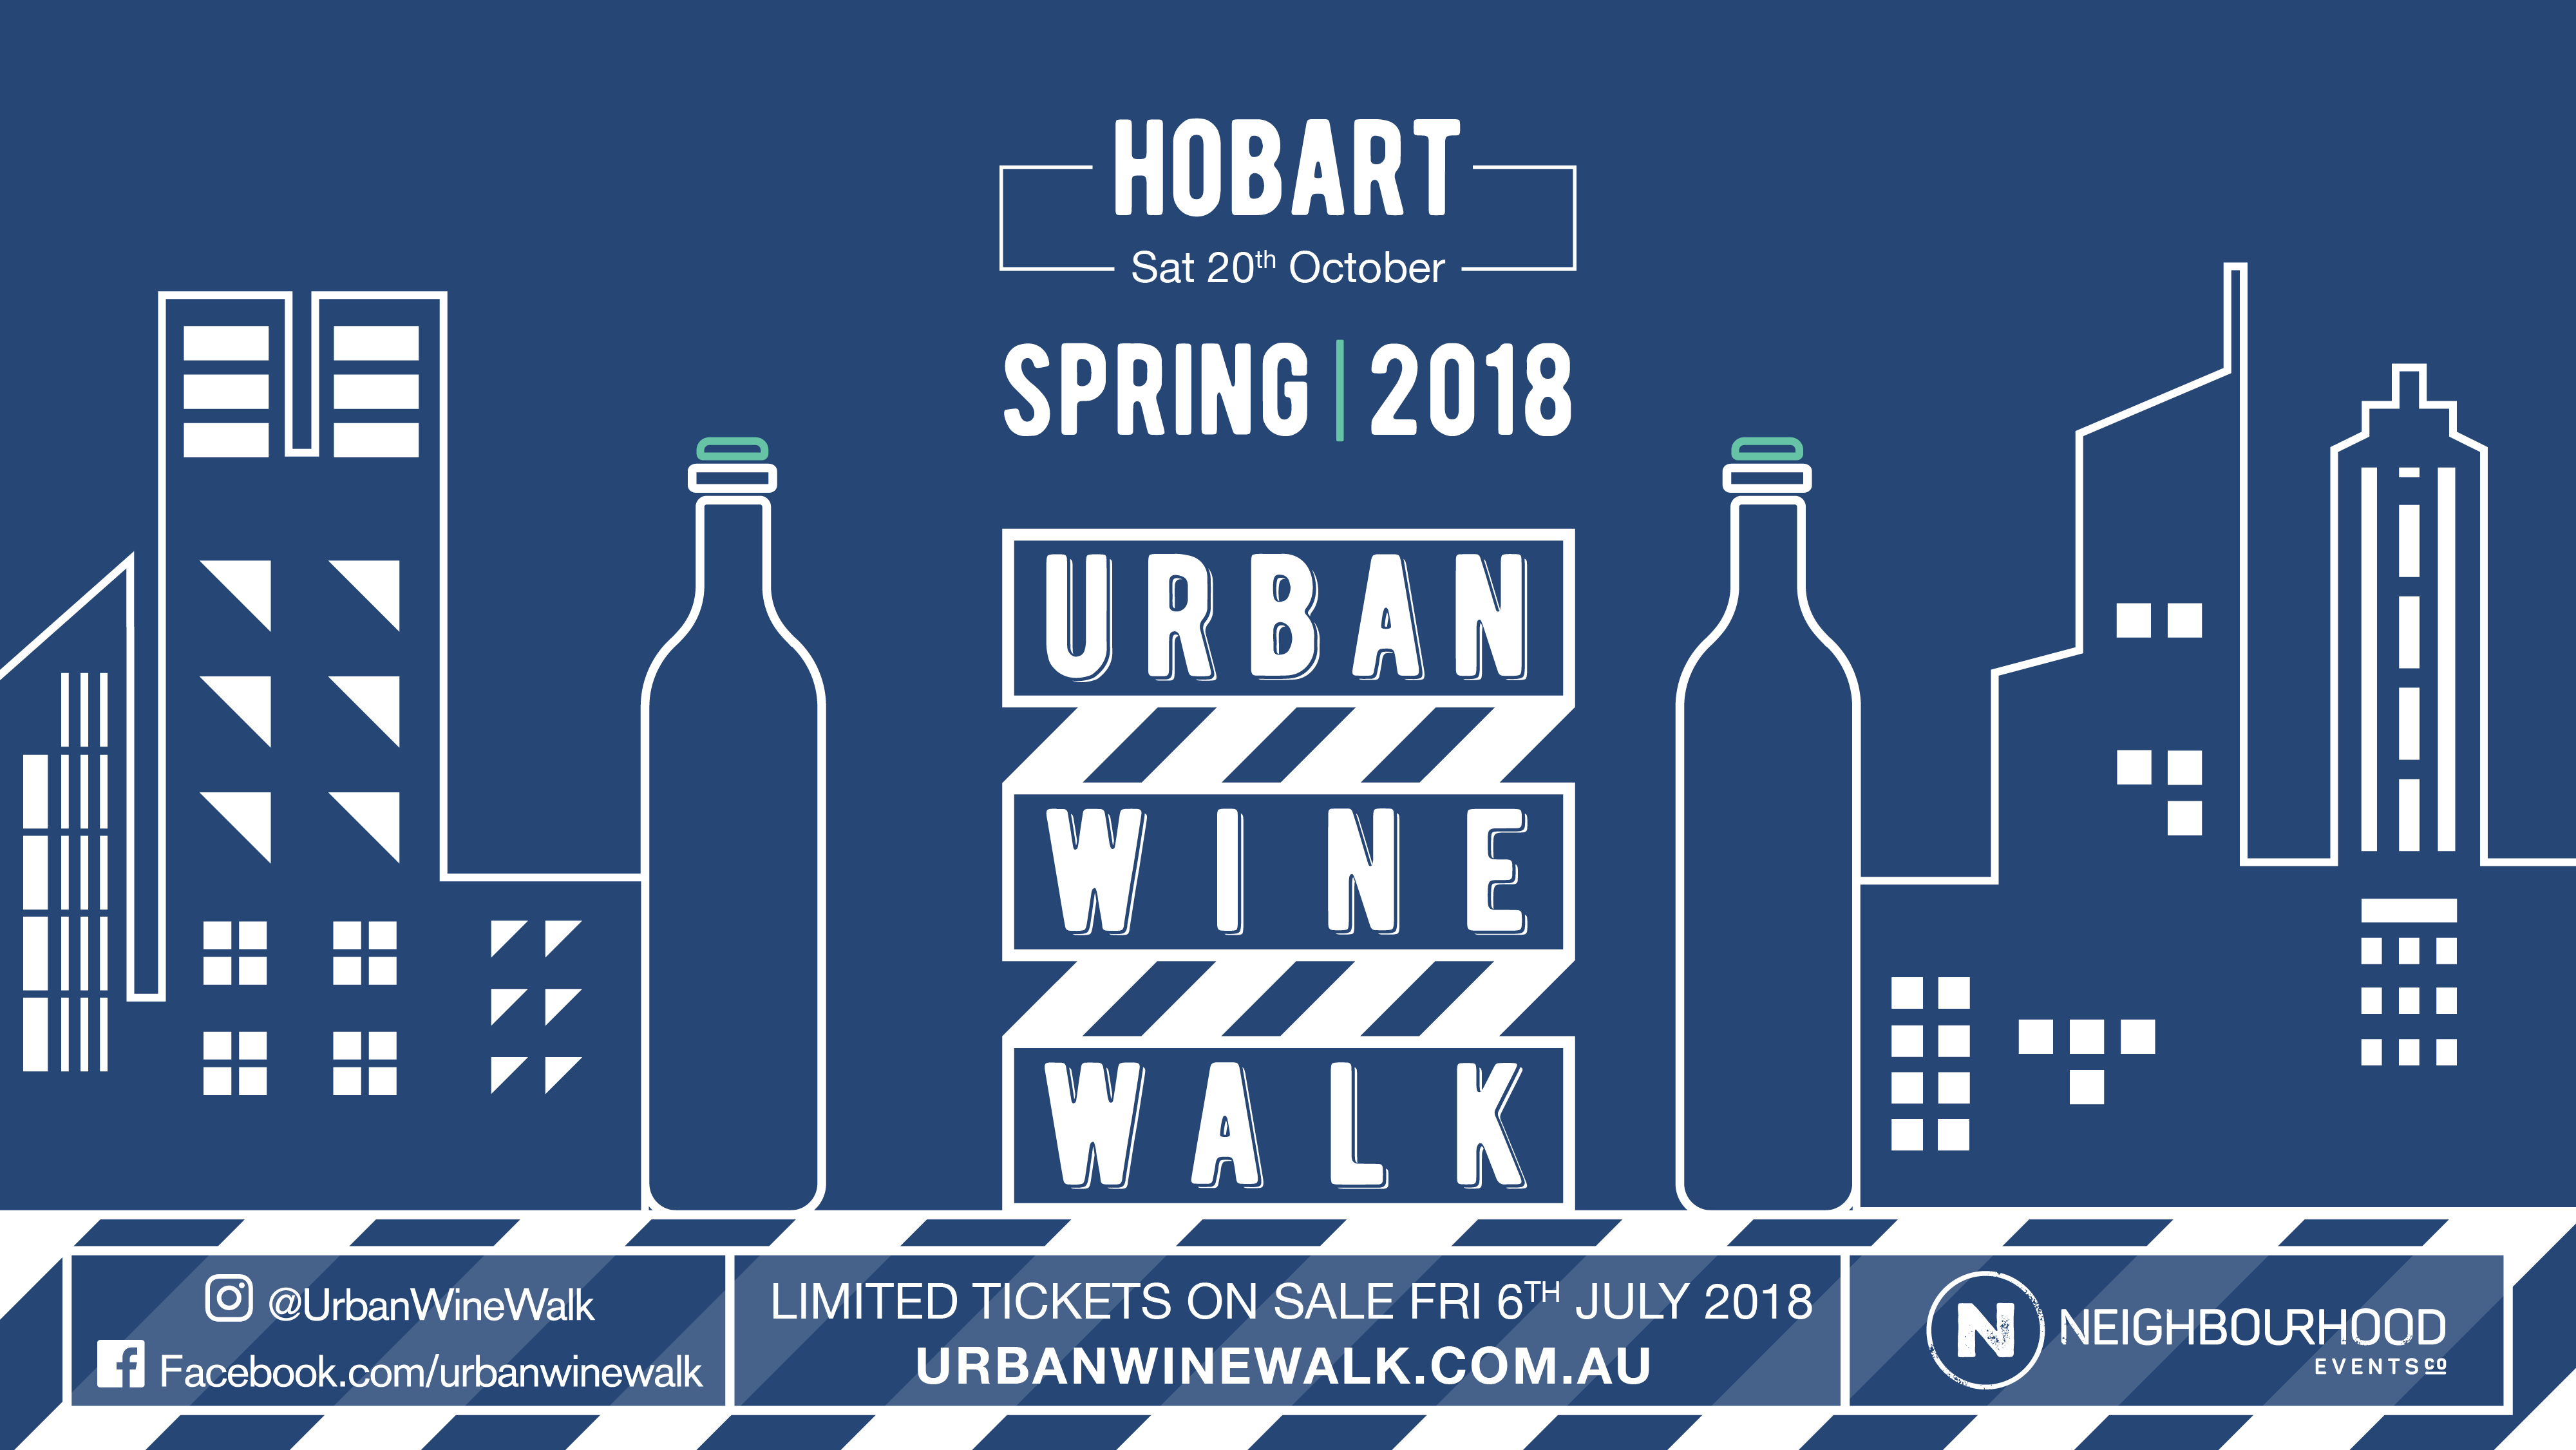 Tickets for Urban Wine Walk Hobart in Hobart from Ticketbooth